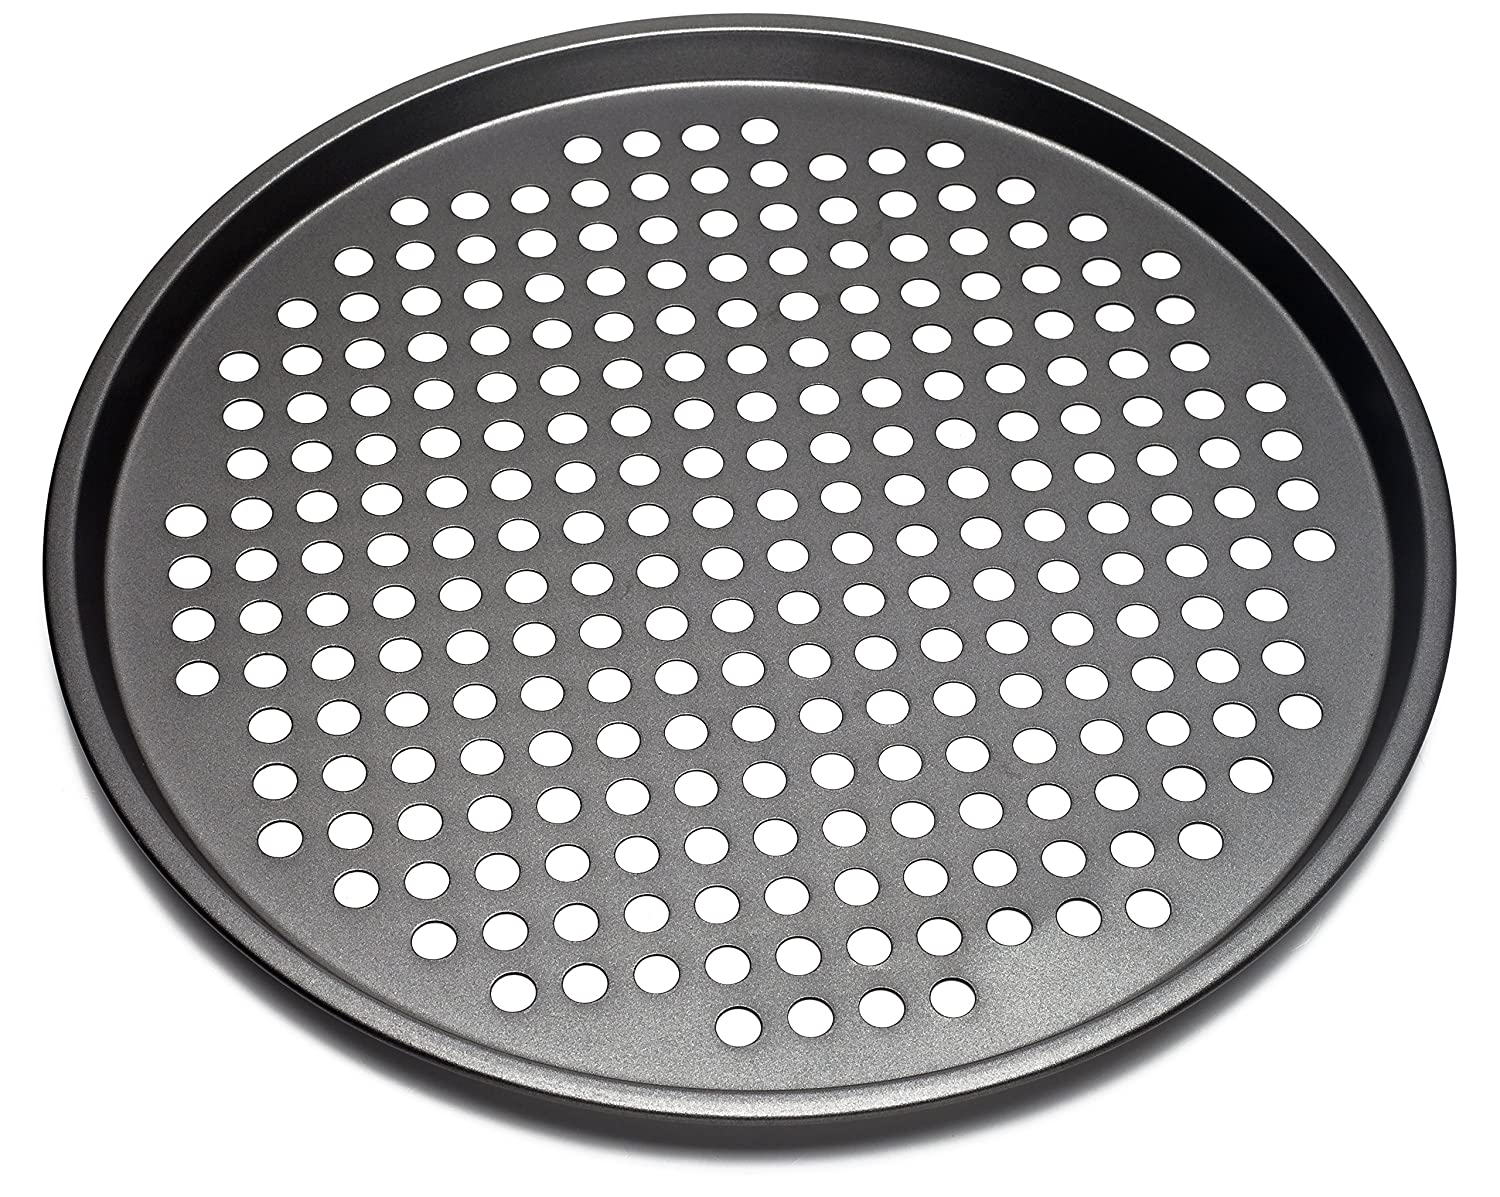 Nonstick Carbon Steel Pizza Tray Pizza Pan with Holes, 13 Inch KAIYEE